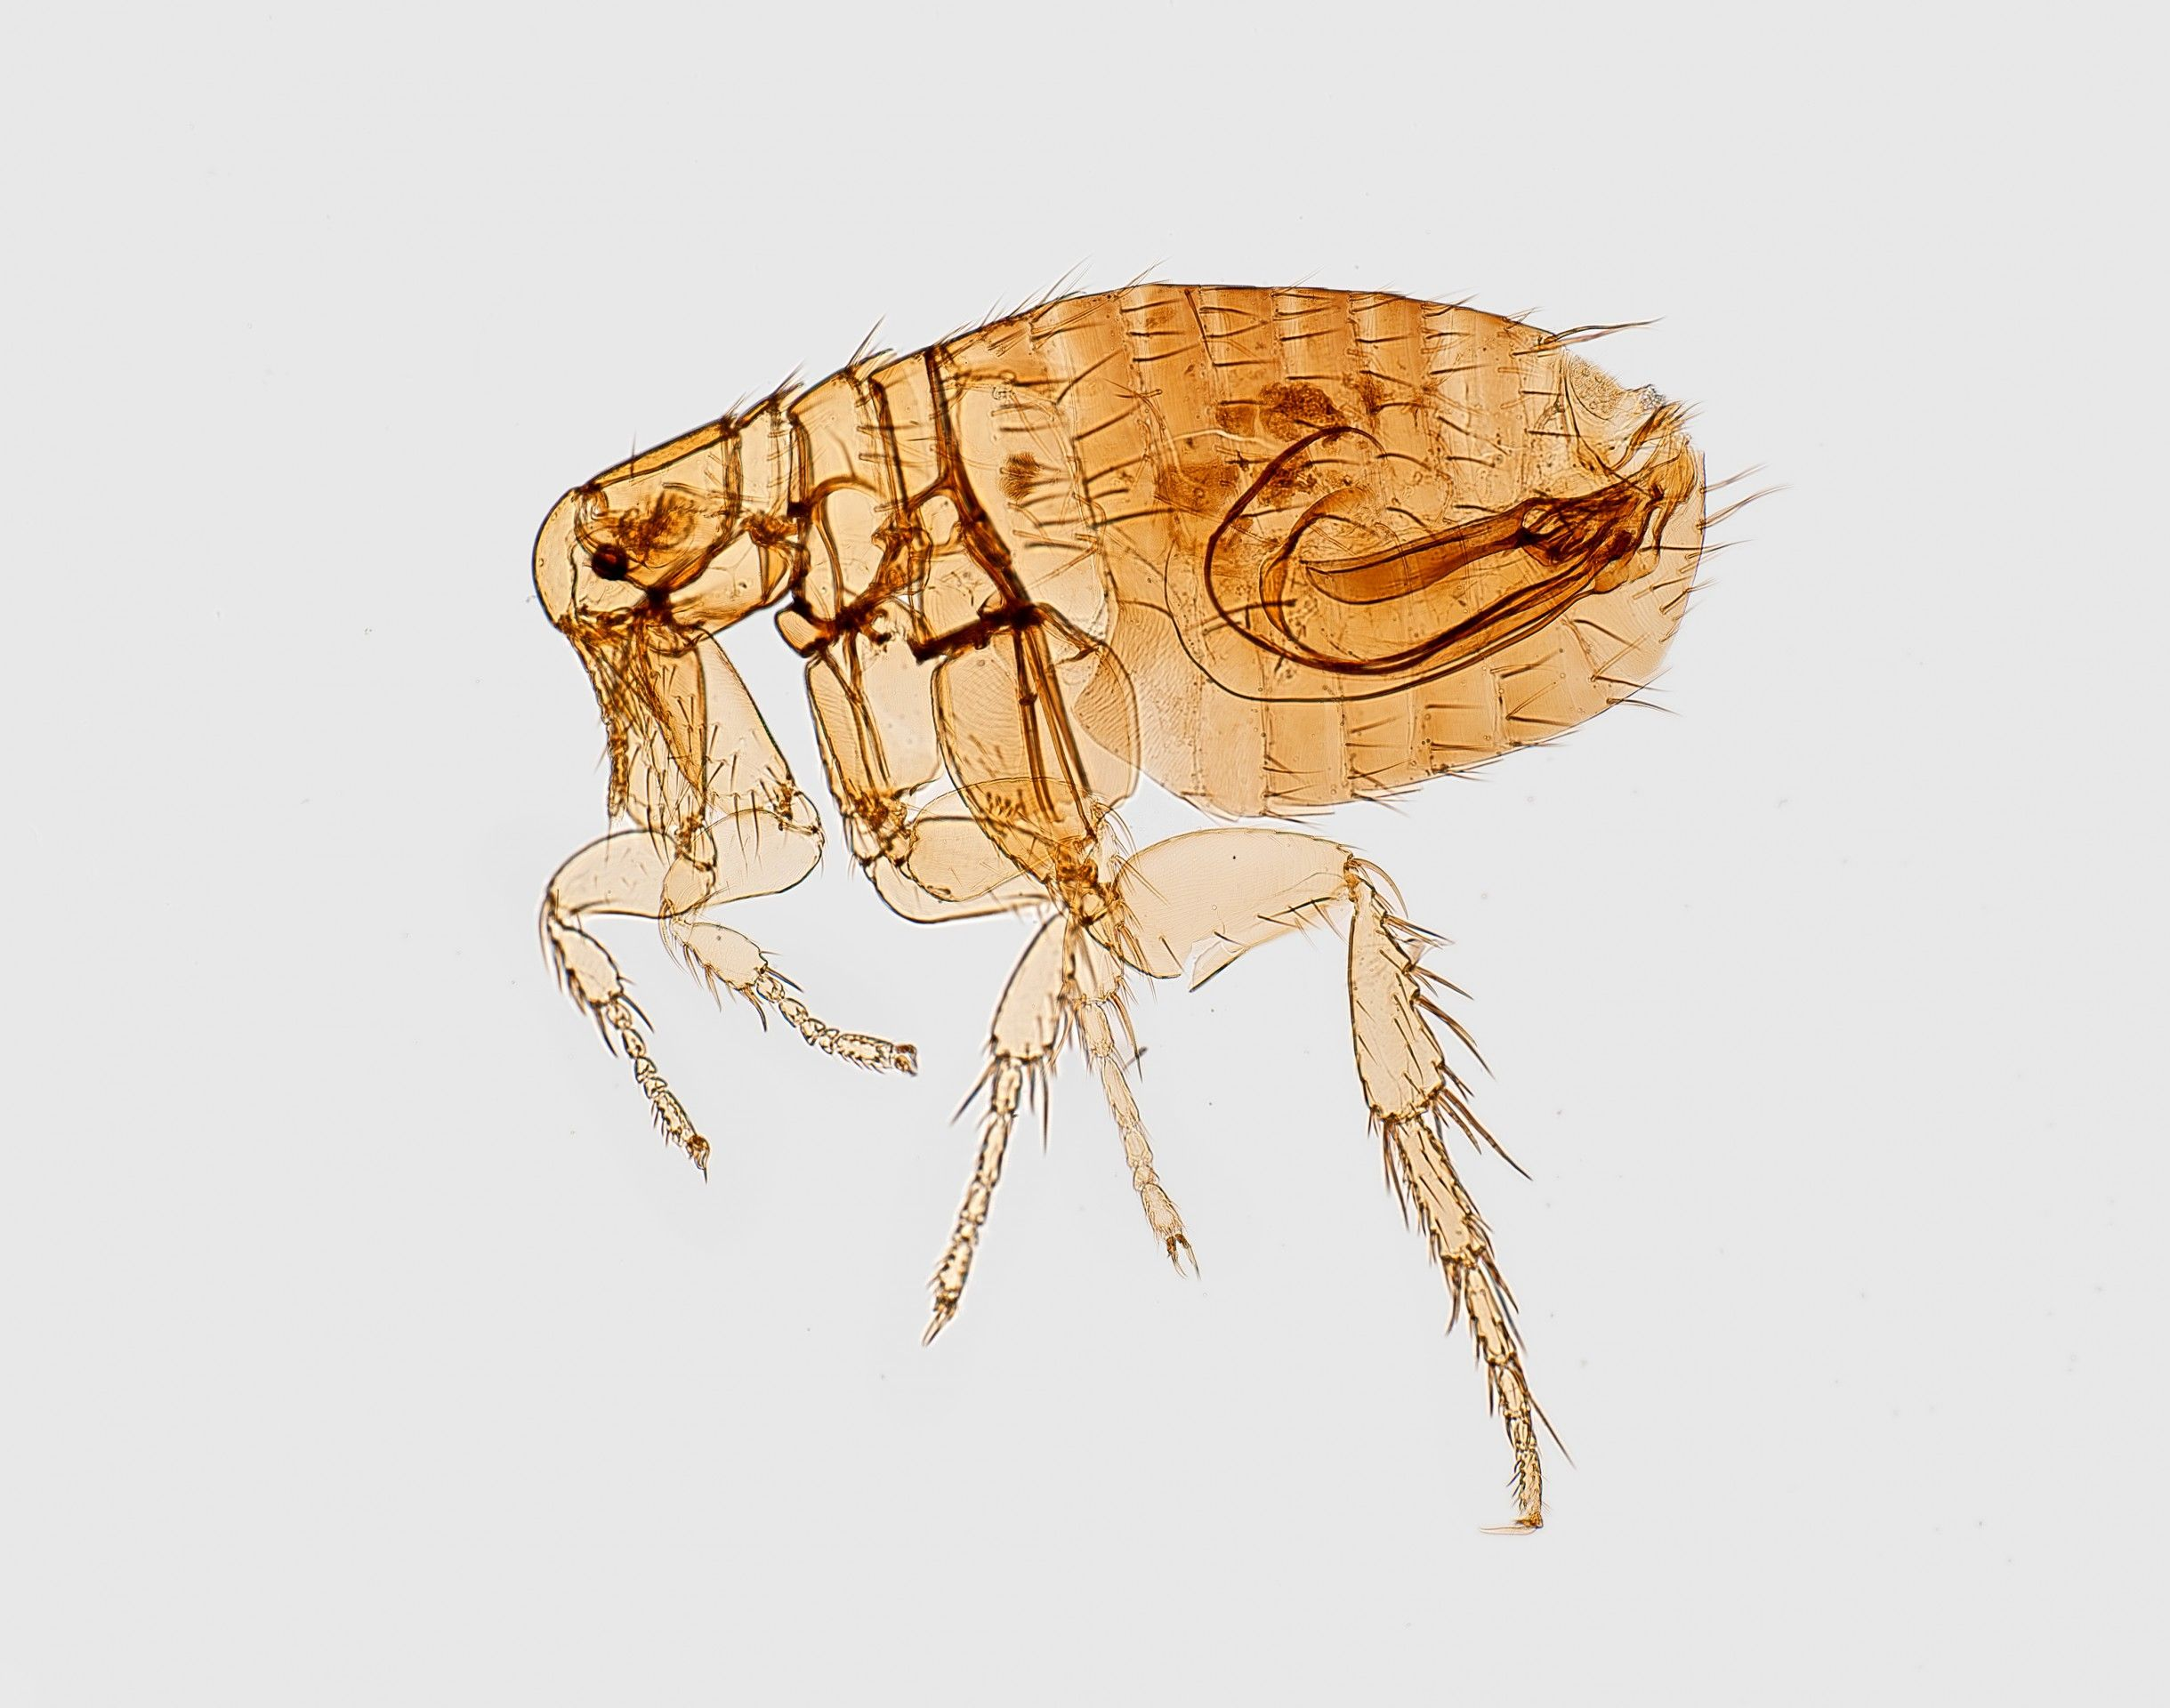 Fleas and other parasites